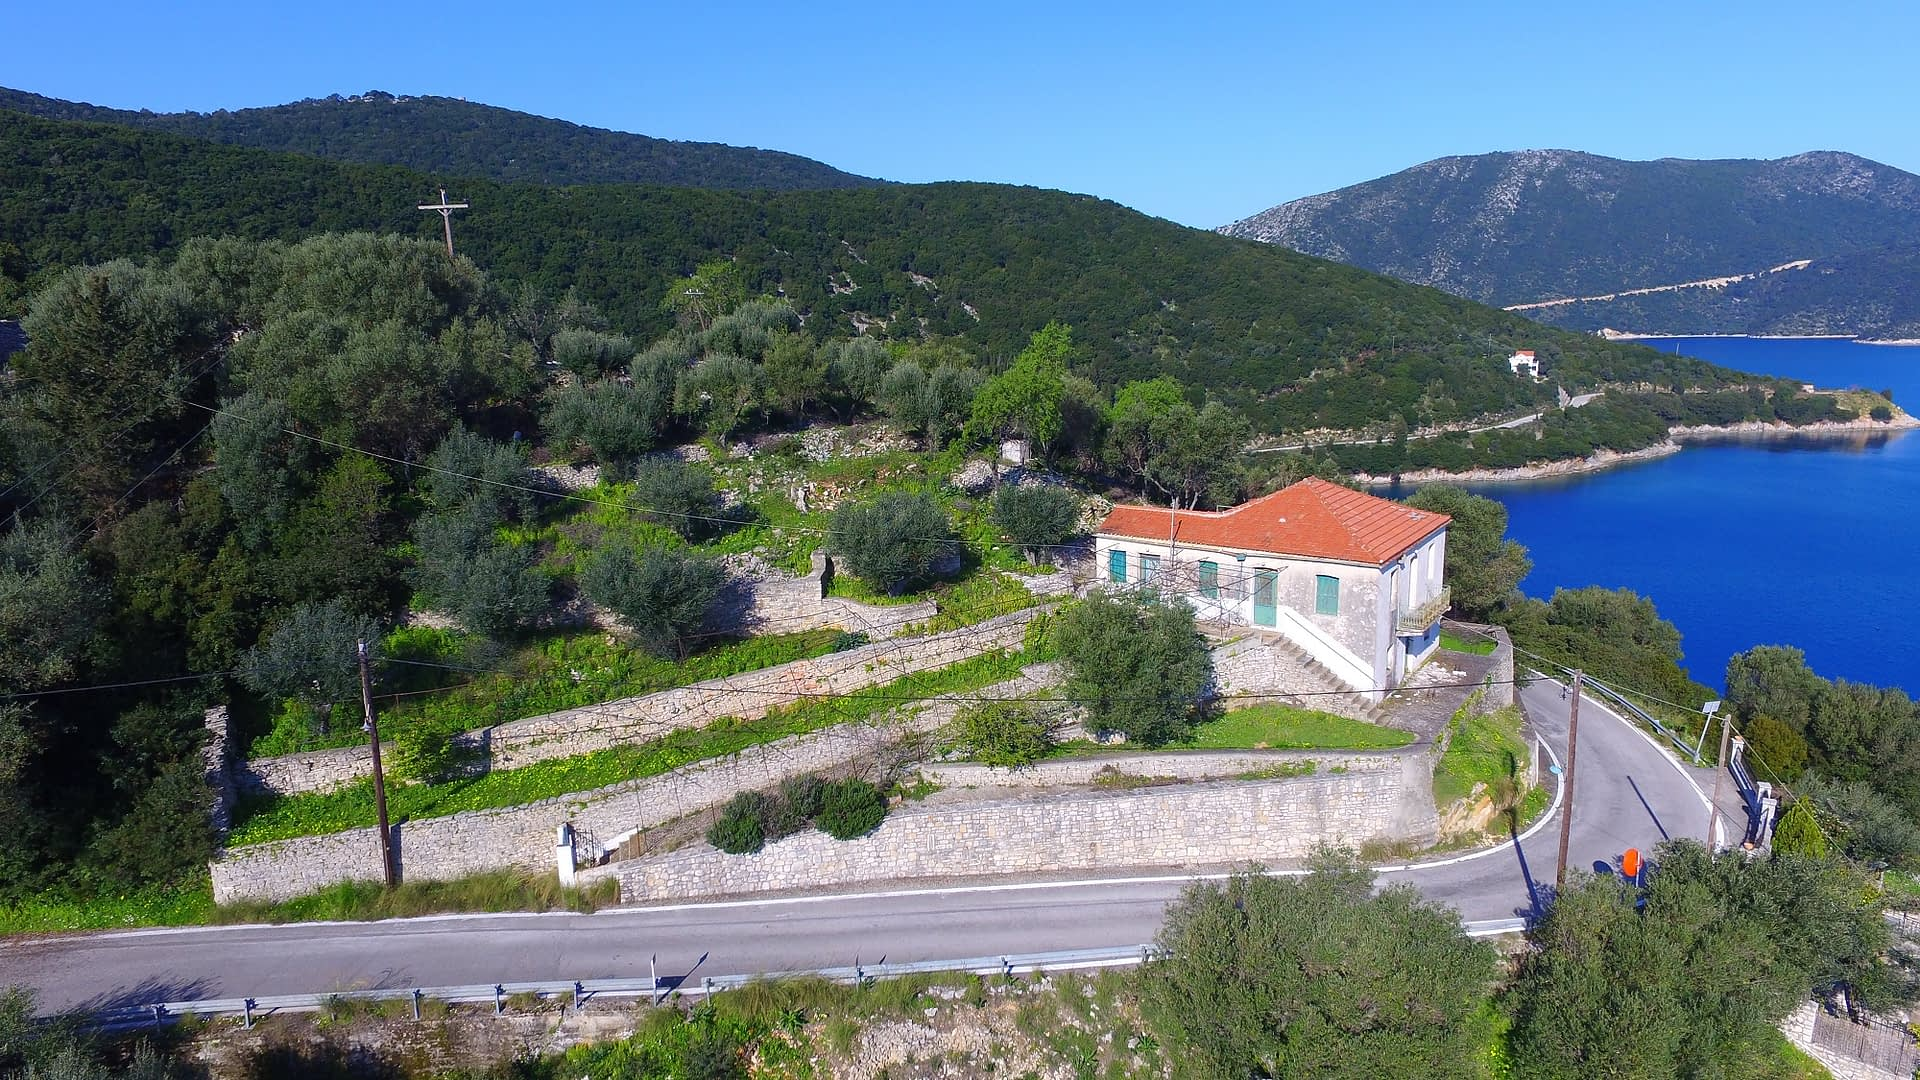 House for sale in Ithaca Greece with exterior views